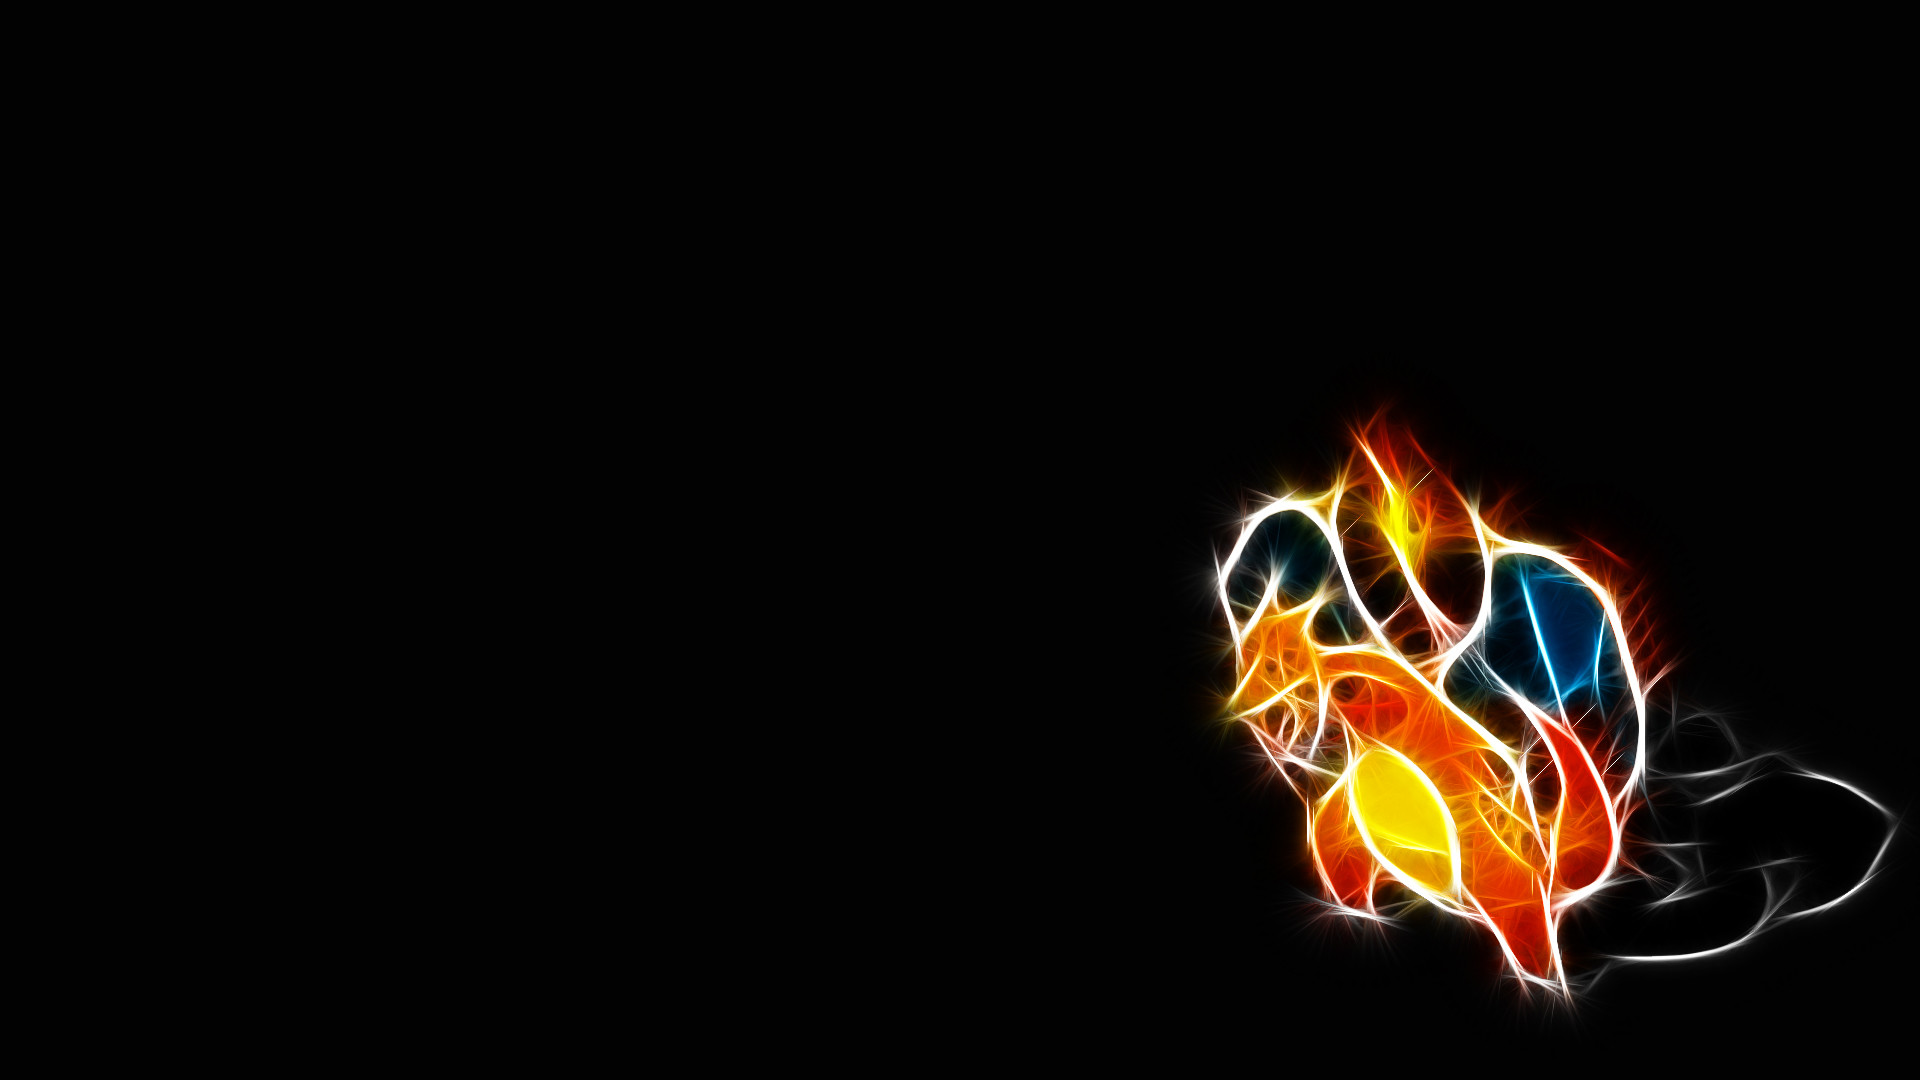 Res: 1920x1080, Incoming search terms: Charizard Wallpaper